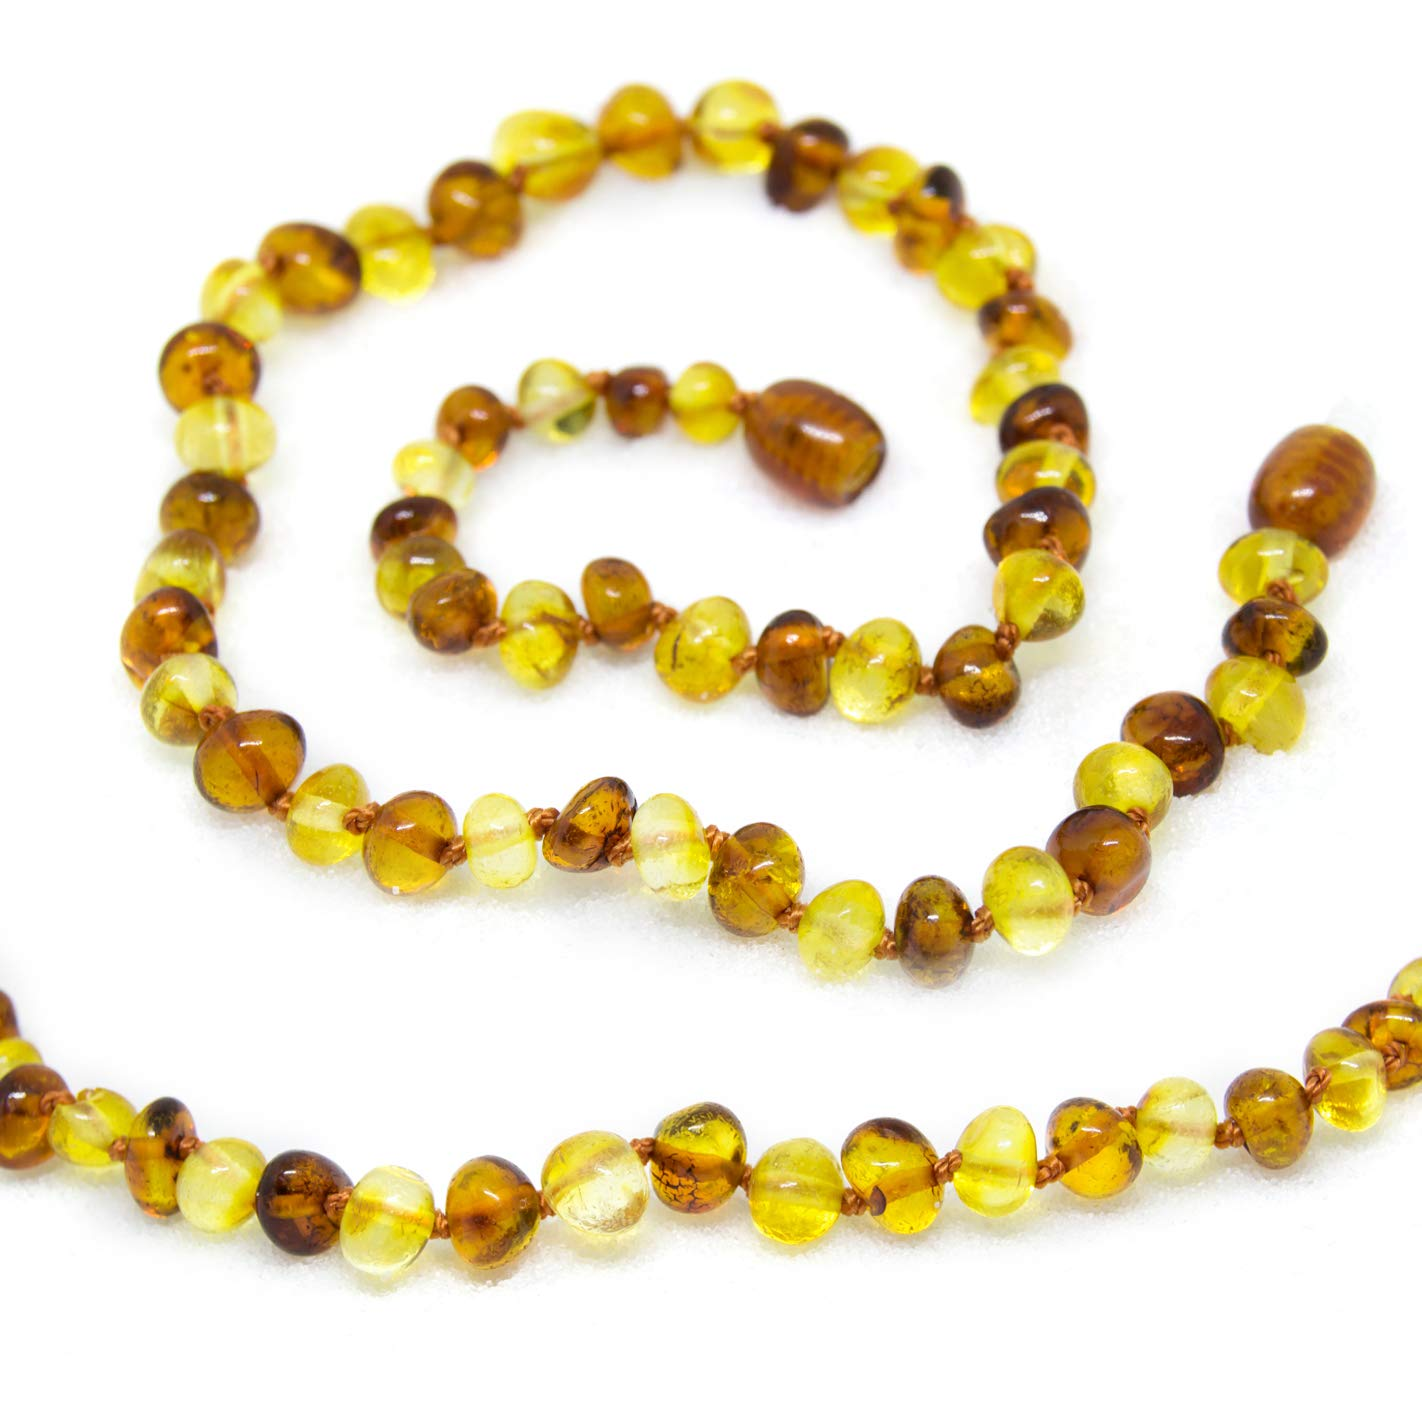 The Art of Cure Baltic Amber Necklace 17 inch -(1x1) FTIR Lab Tested Authentic Amber by The Art of Cure